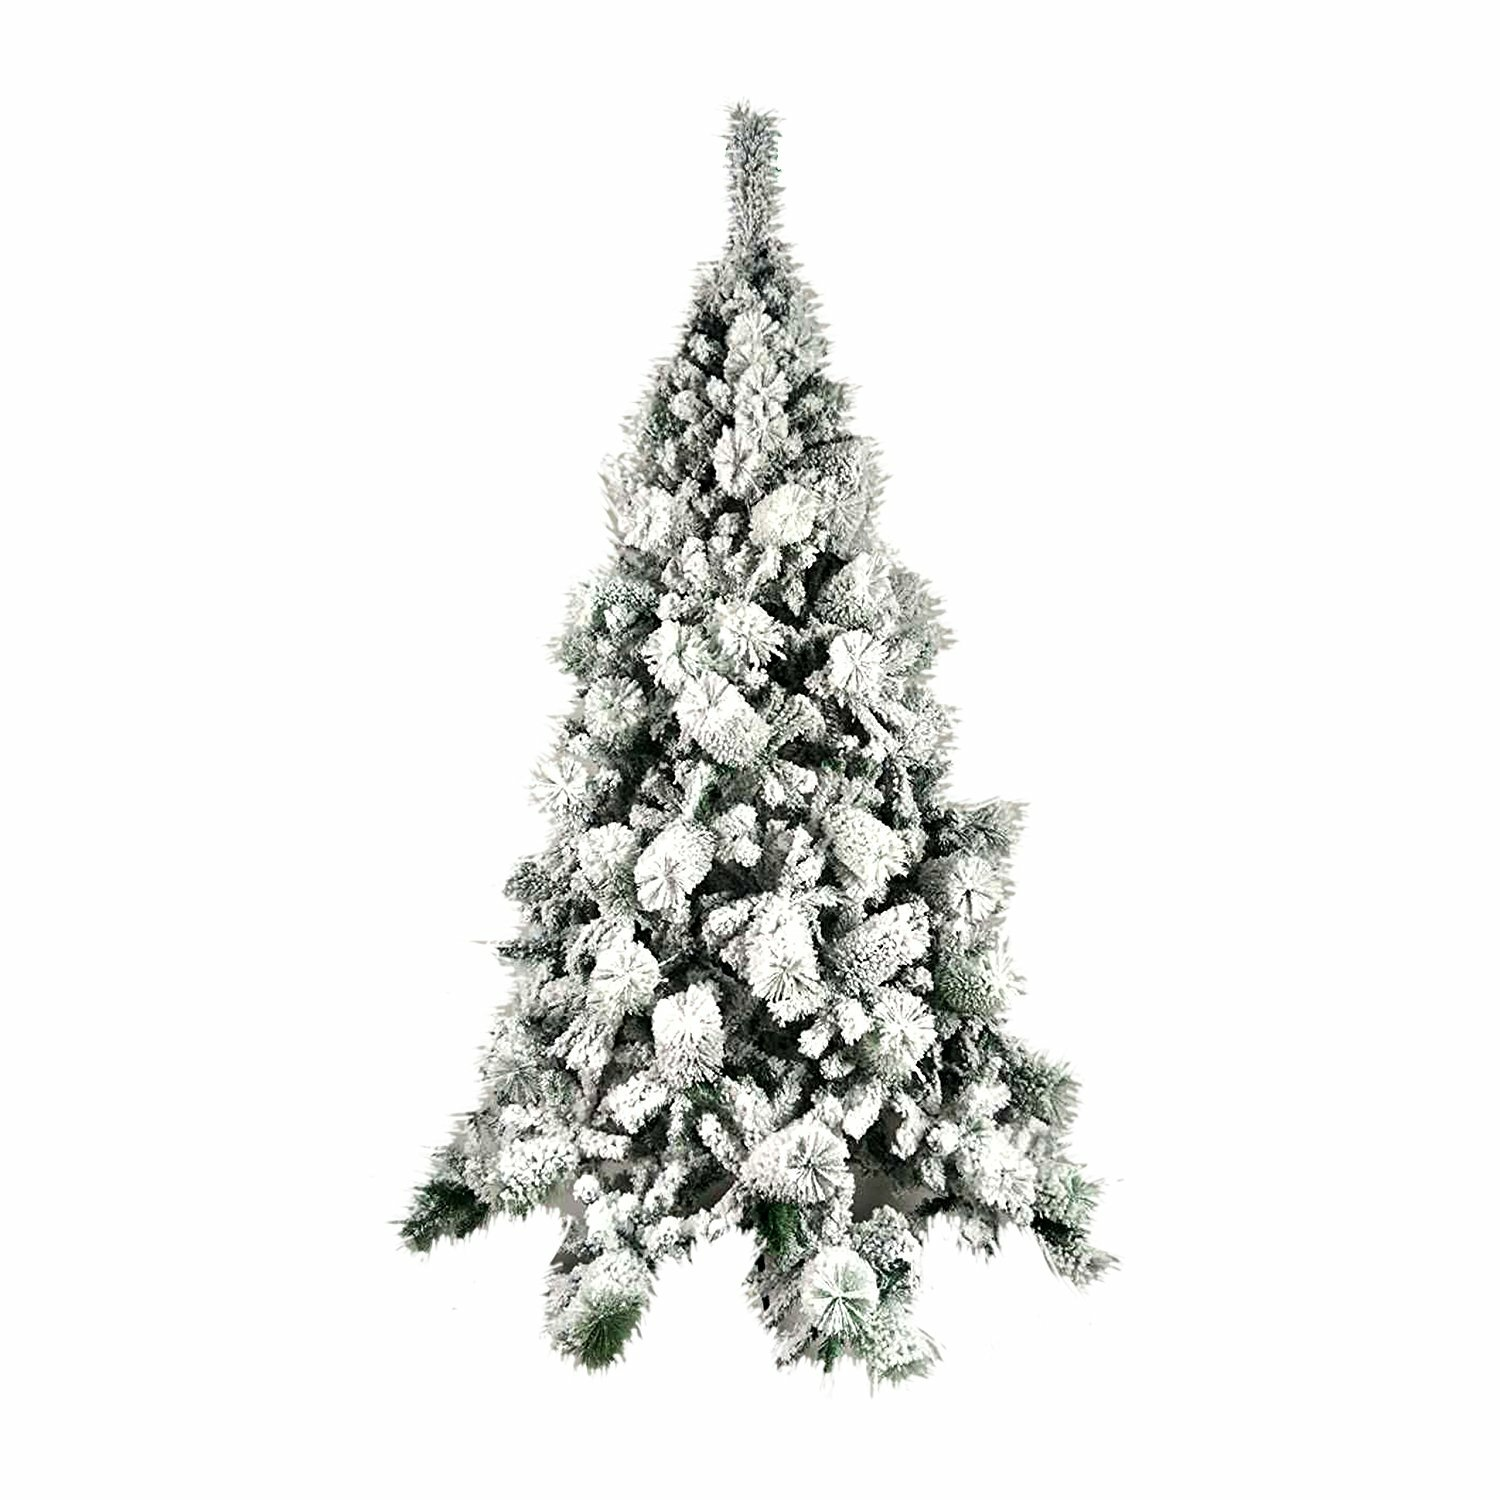 Green Christmas Tree With White Snow Tyres2c